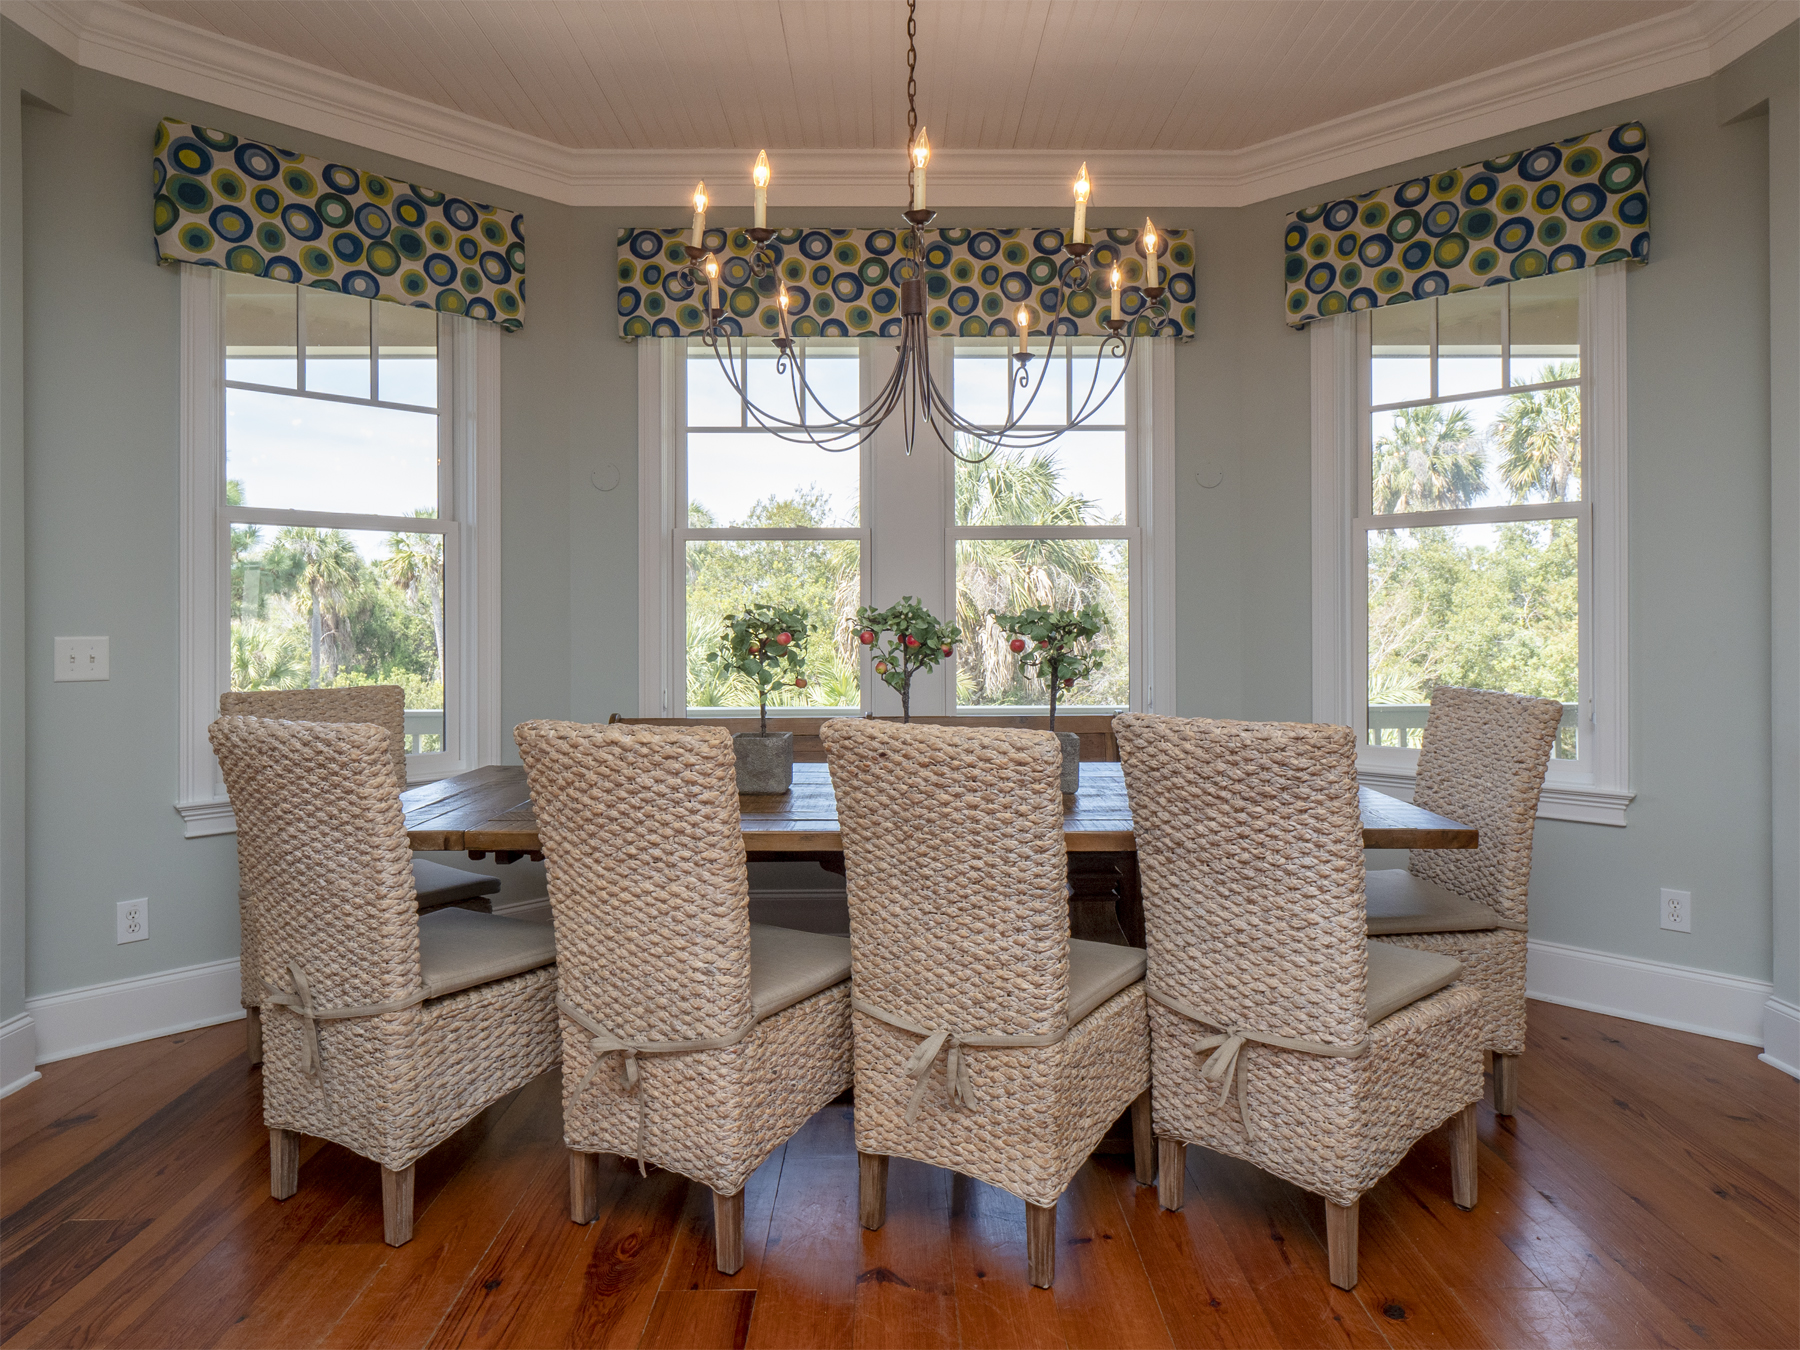 Beautiful views from dining area.